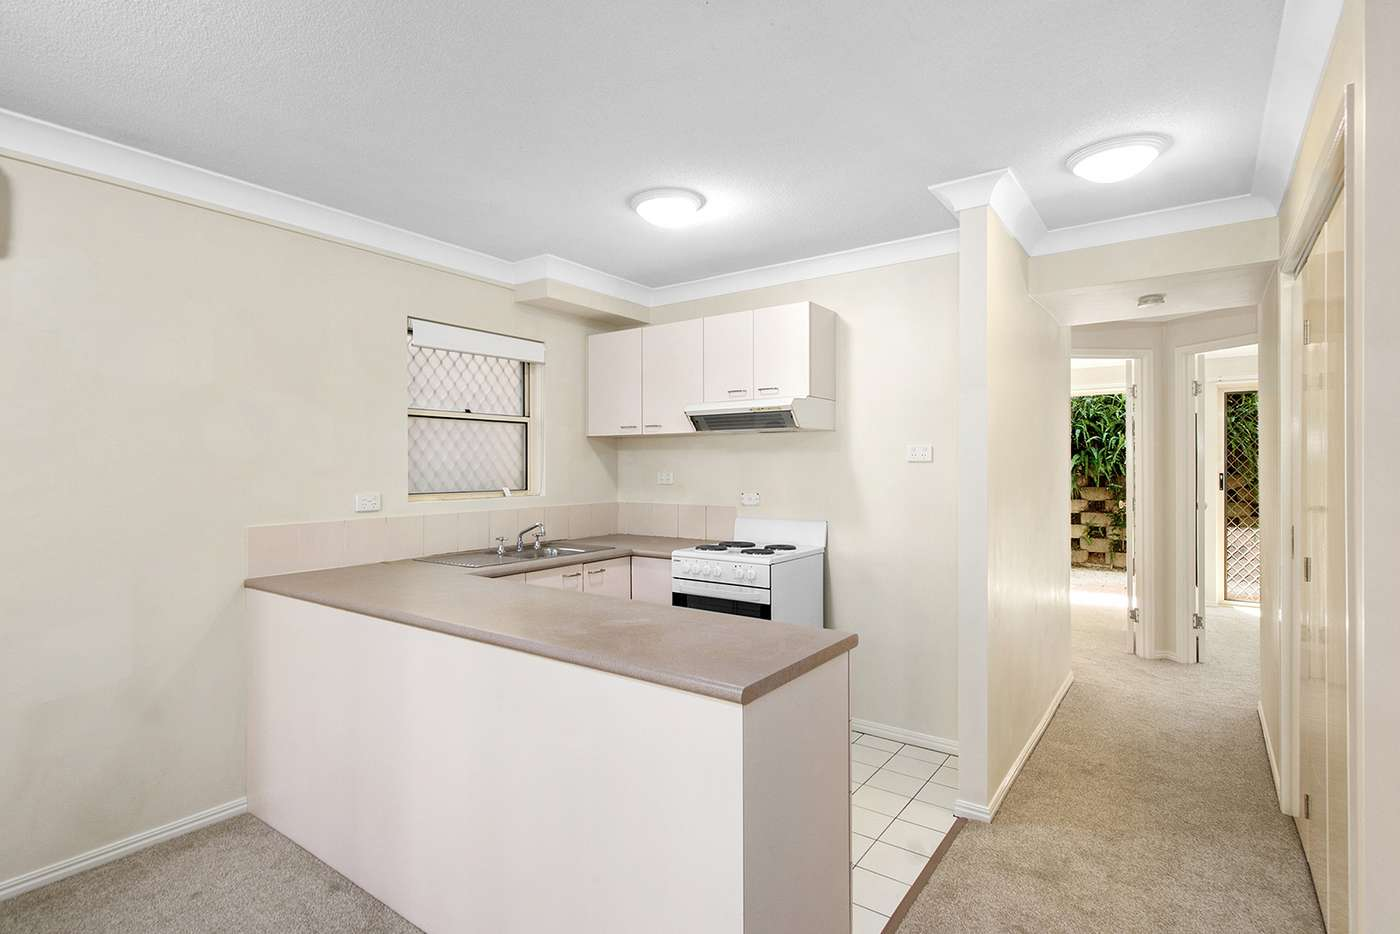 Main view of Homely apartment listing, 2/12 Mcgregor Avenue, Lutwyche QLD 4030